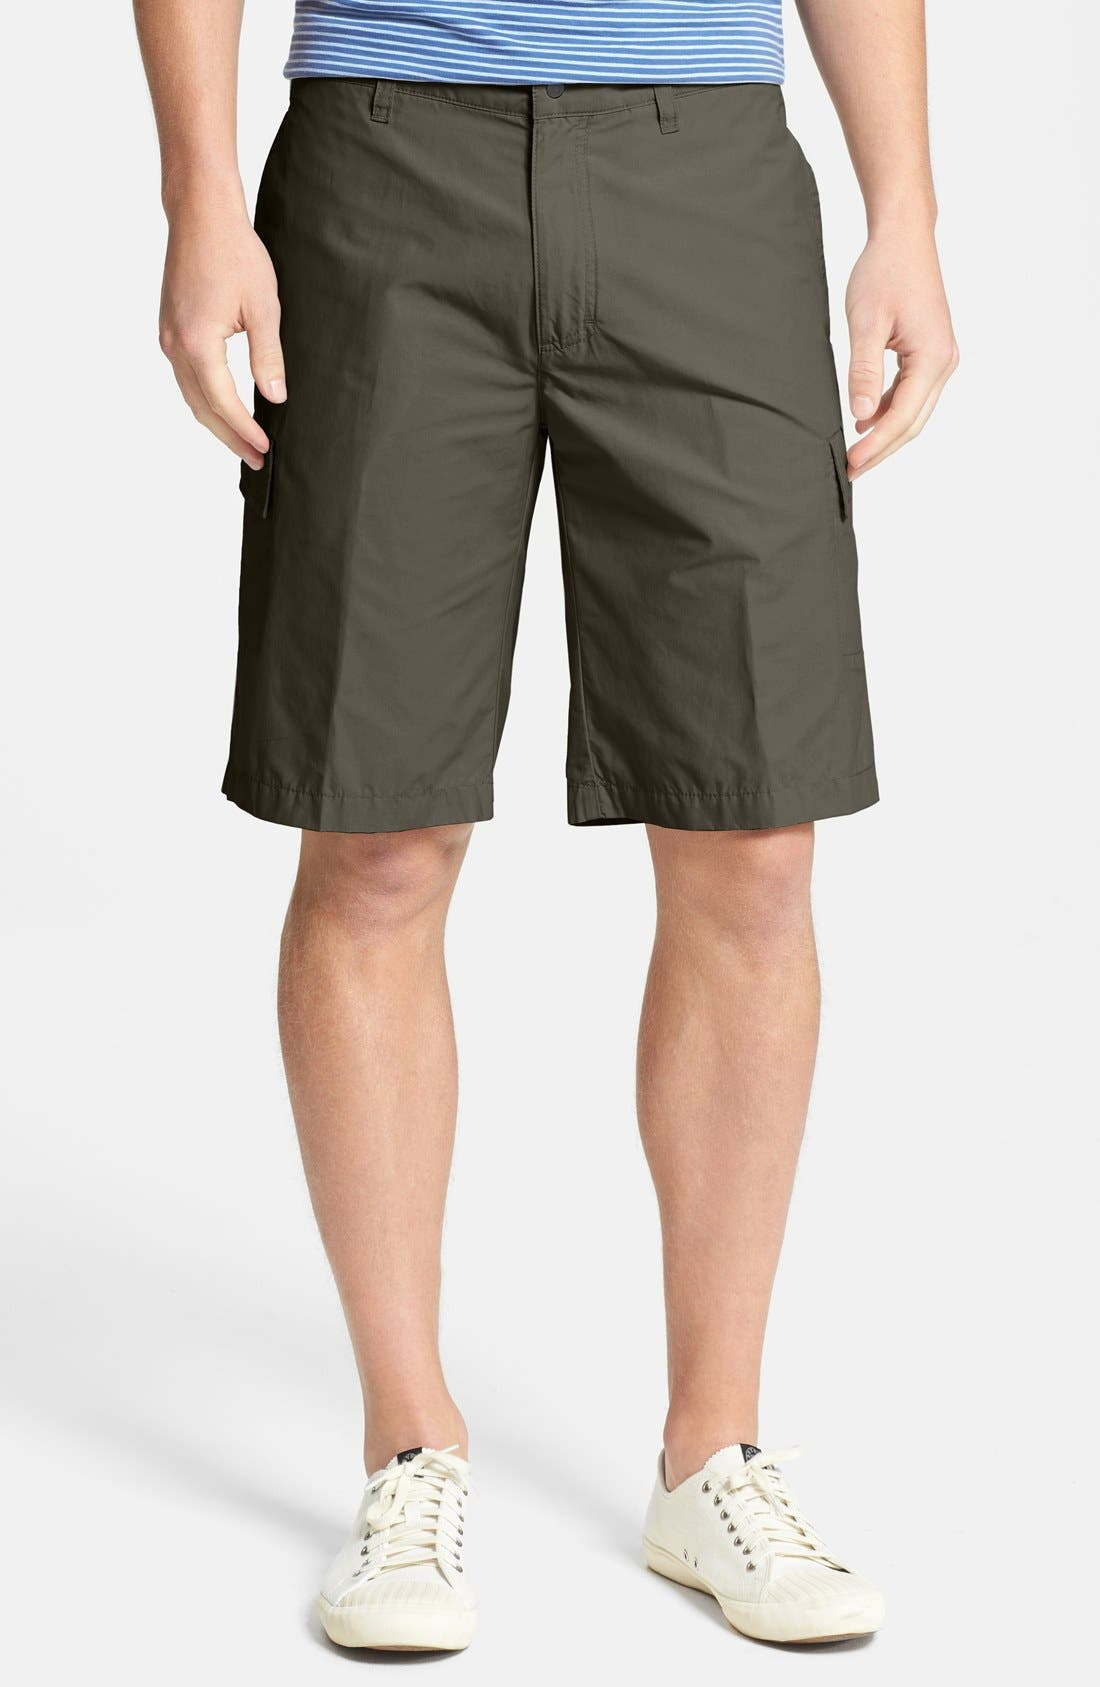 Alternate Image 1 Selected - Victorinox Swiss Army® 'Warner' Quick Dry Cargo Shorts